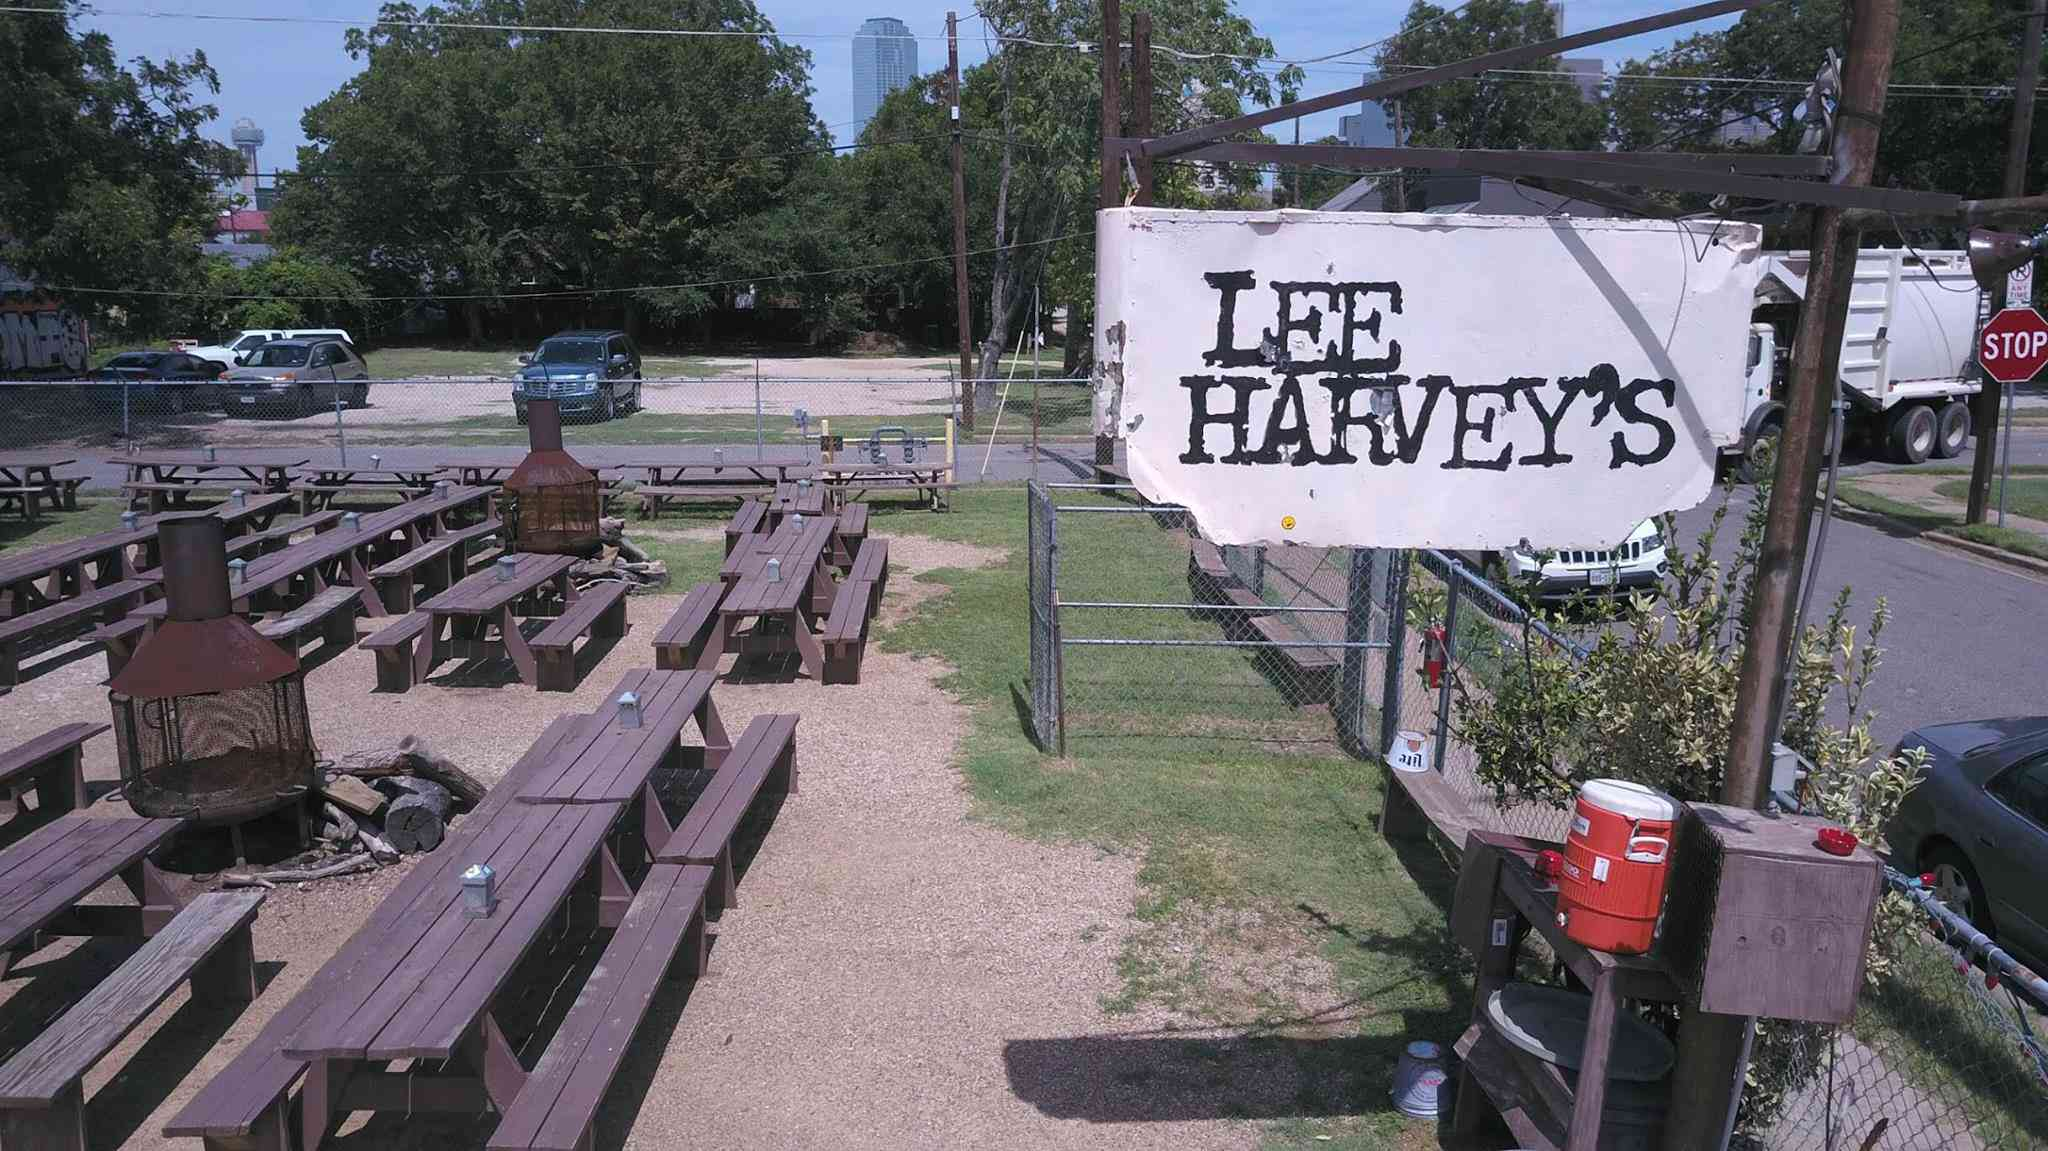 Outdoor wooden picnic tables in a gravel lot. There is a sign to the right of the tables that says